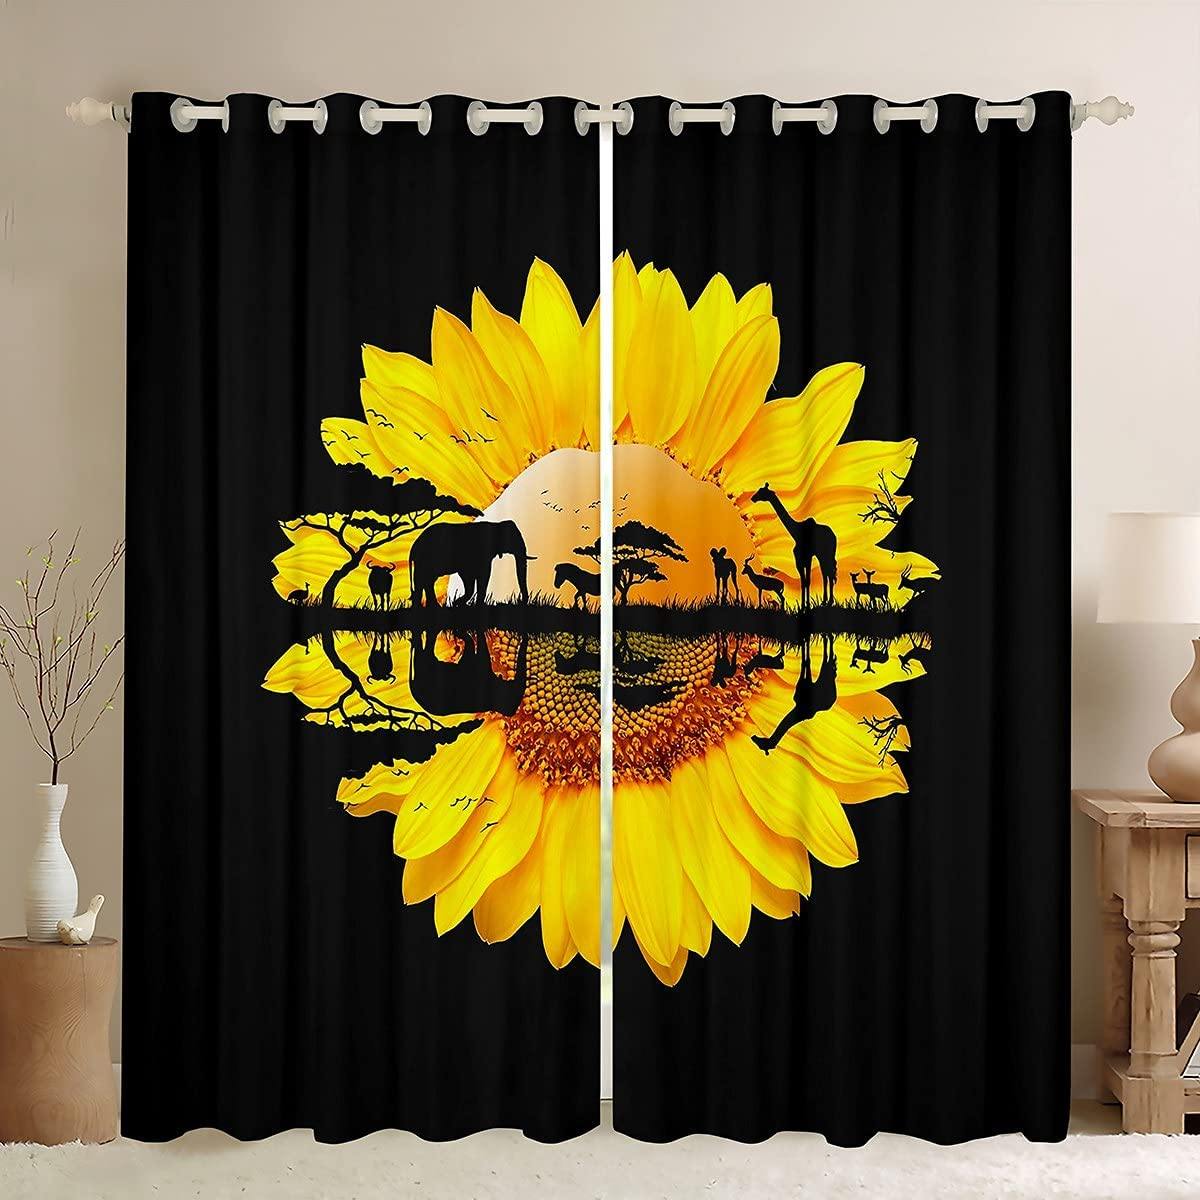 Sunflower Curtains Elephant Giraffe Animal Silhouett Deer Sales of SALE Ranking TOP16 items from new works Cattle